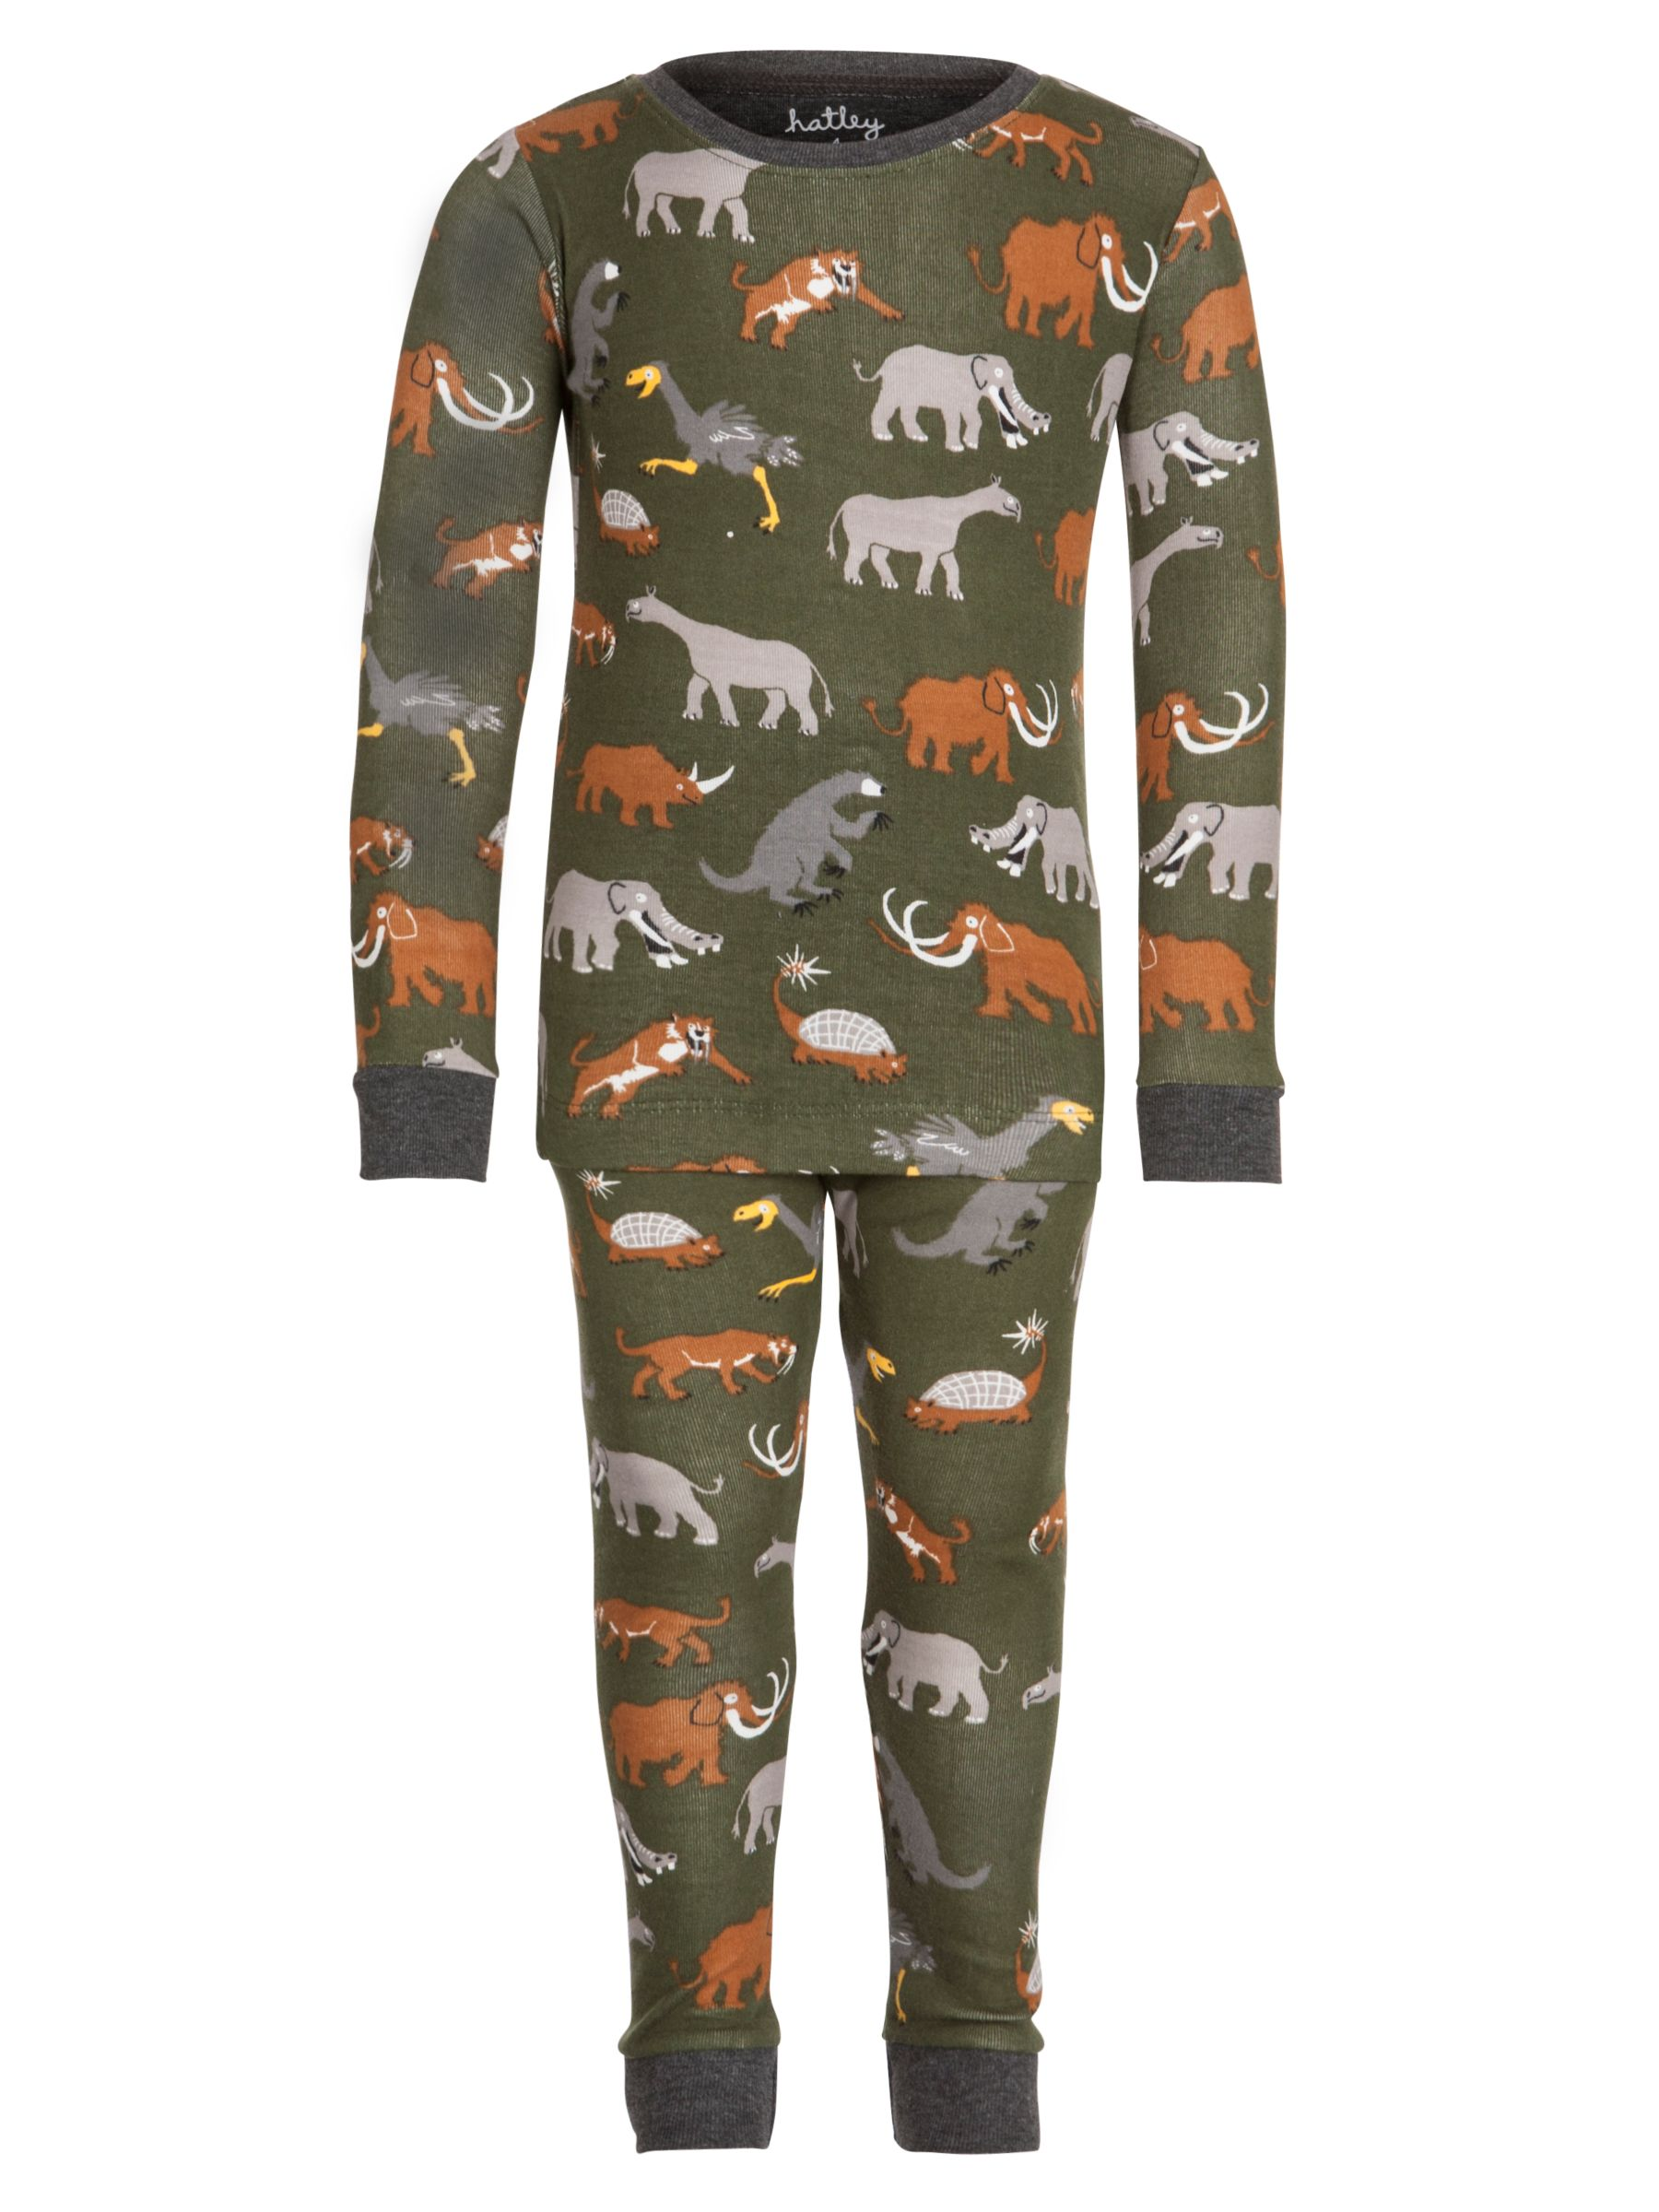 Hatley Boys' Extinct Animal Print Pyjamas, Khaki